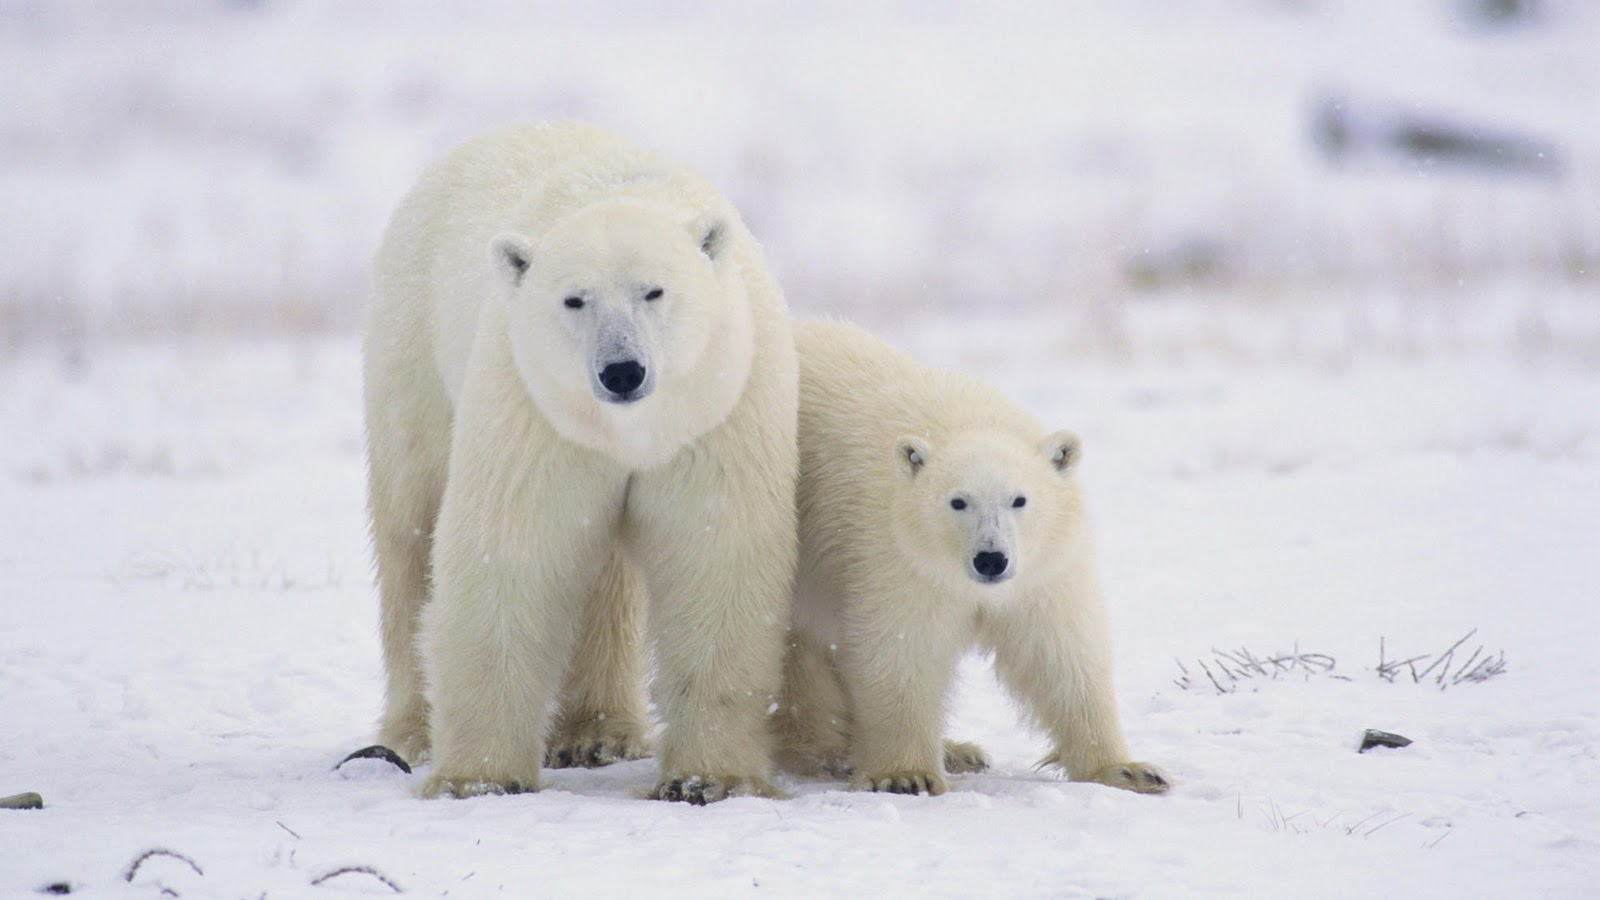 Polar Bear Desktop Wallpaper  Free wallpaper download 1600x900